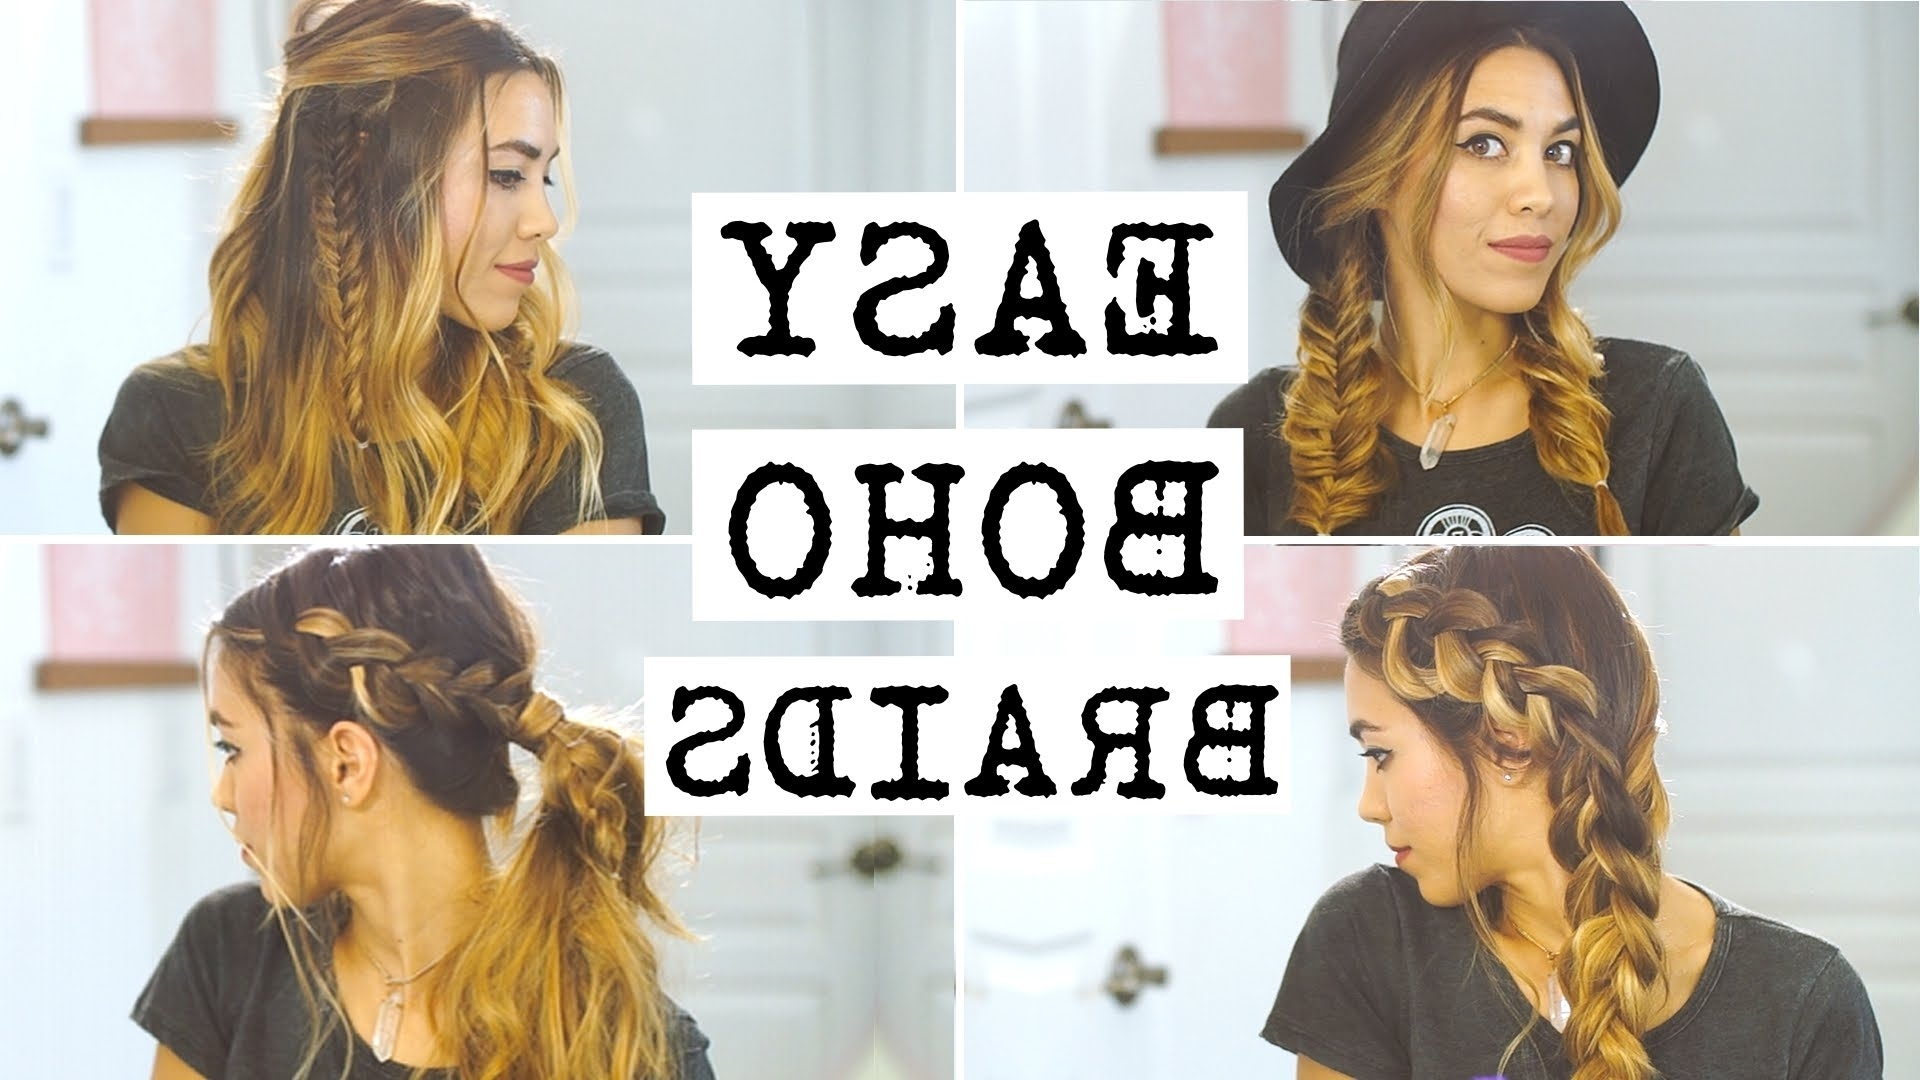 4 Easy Boho Braid Hairstyles – Youtube For Most Up To Date Boho Braided Hairstyles (View 2 of 15)